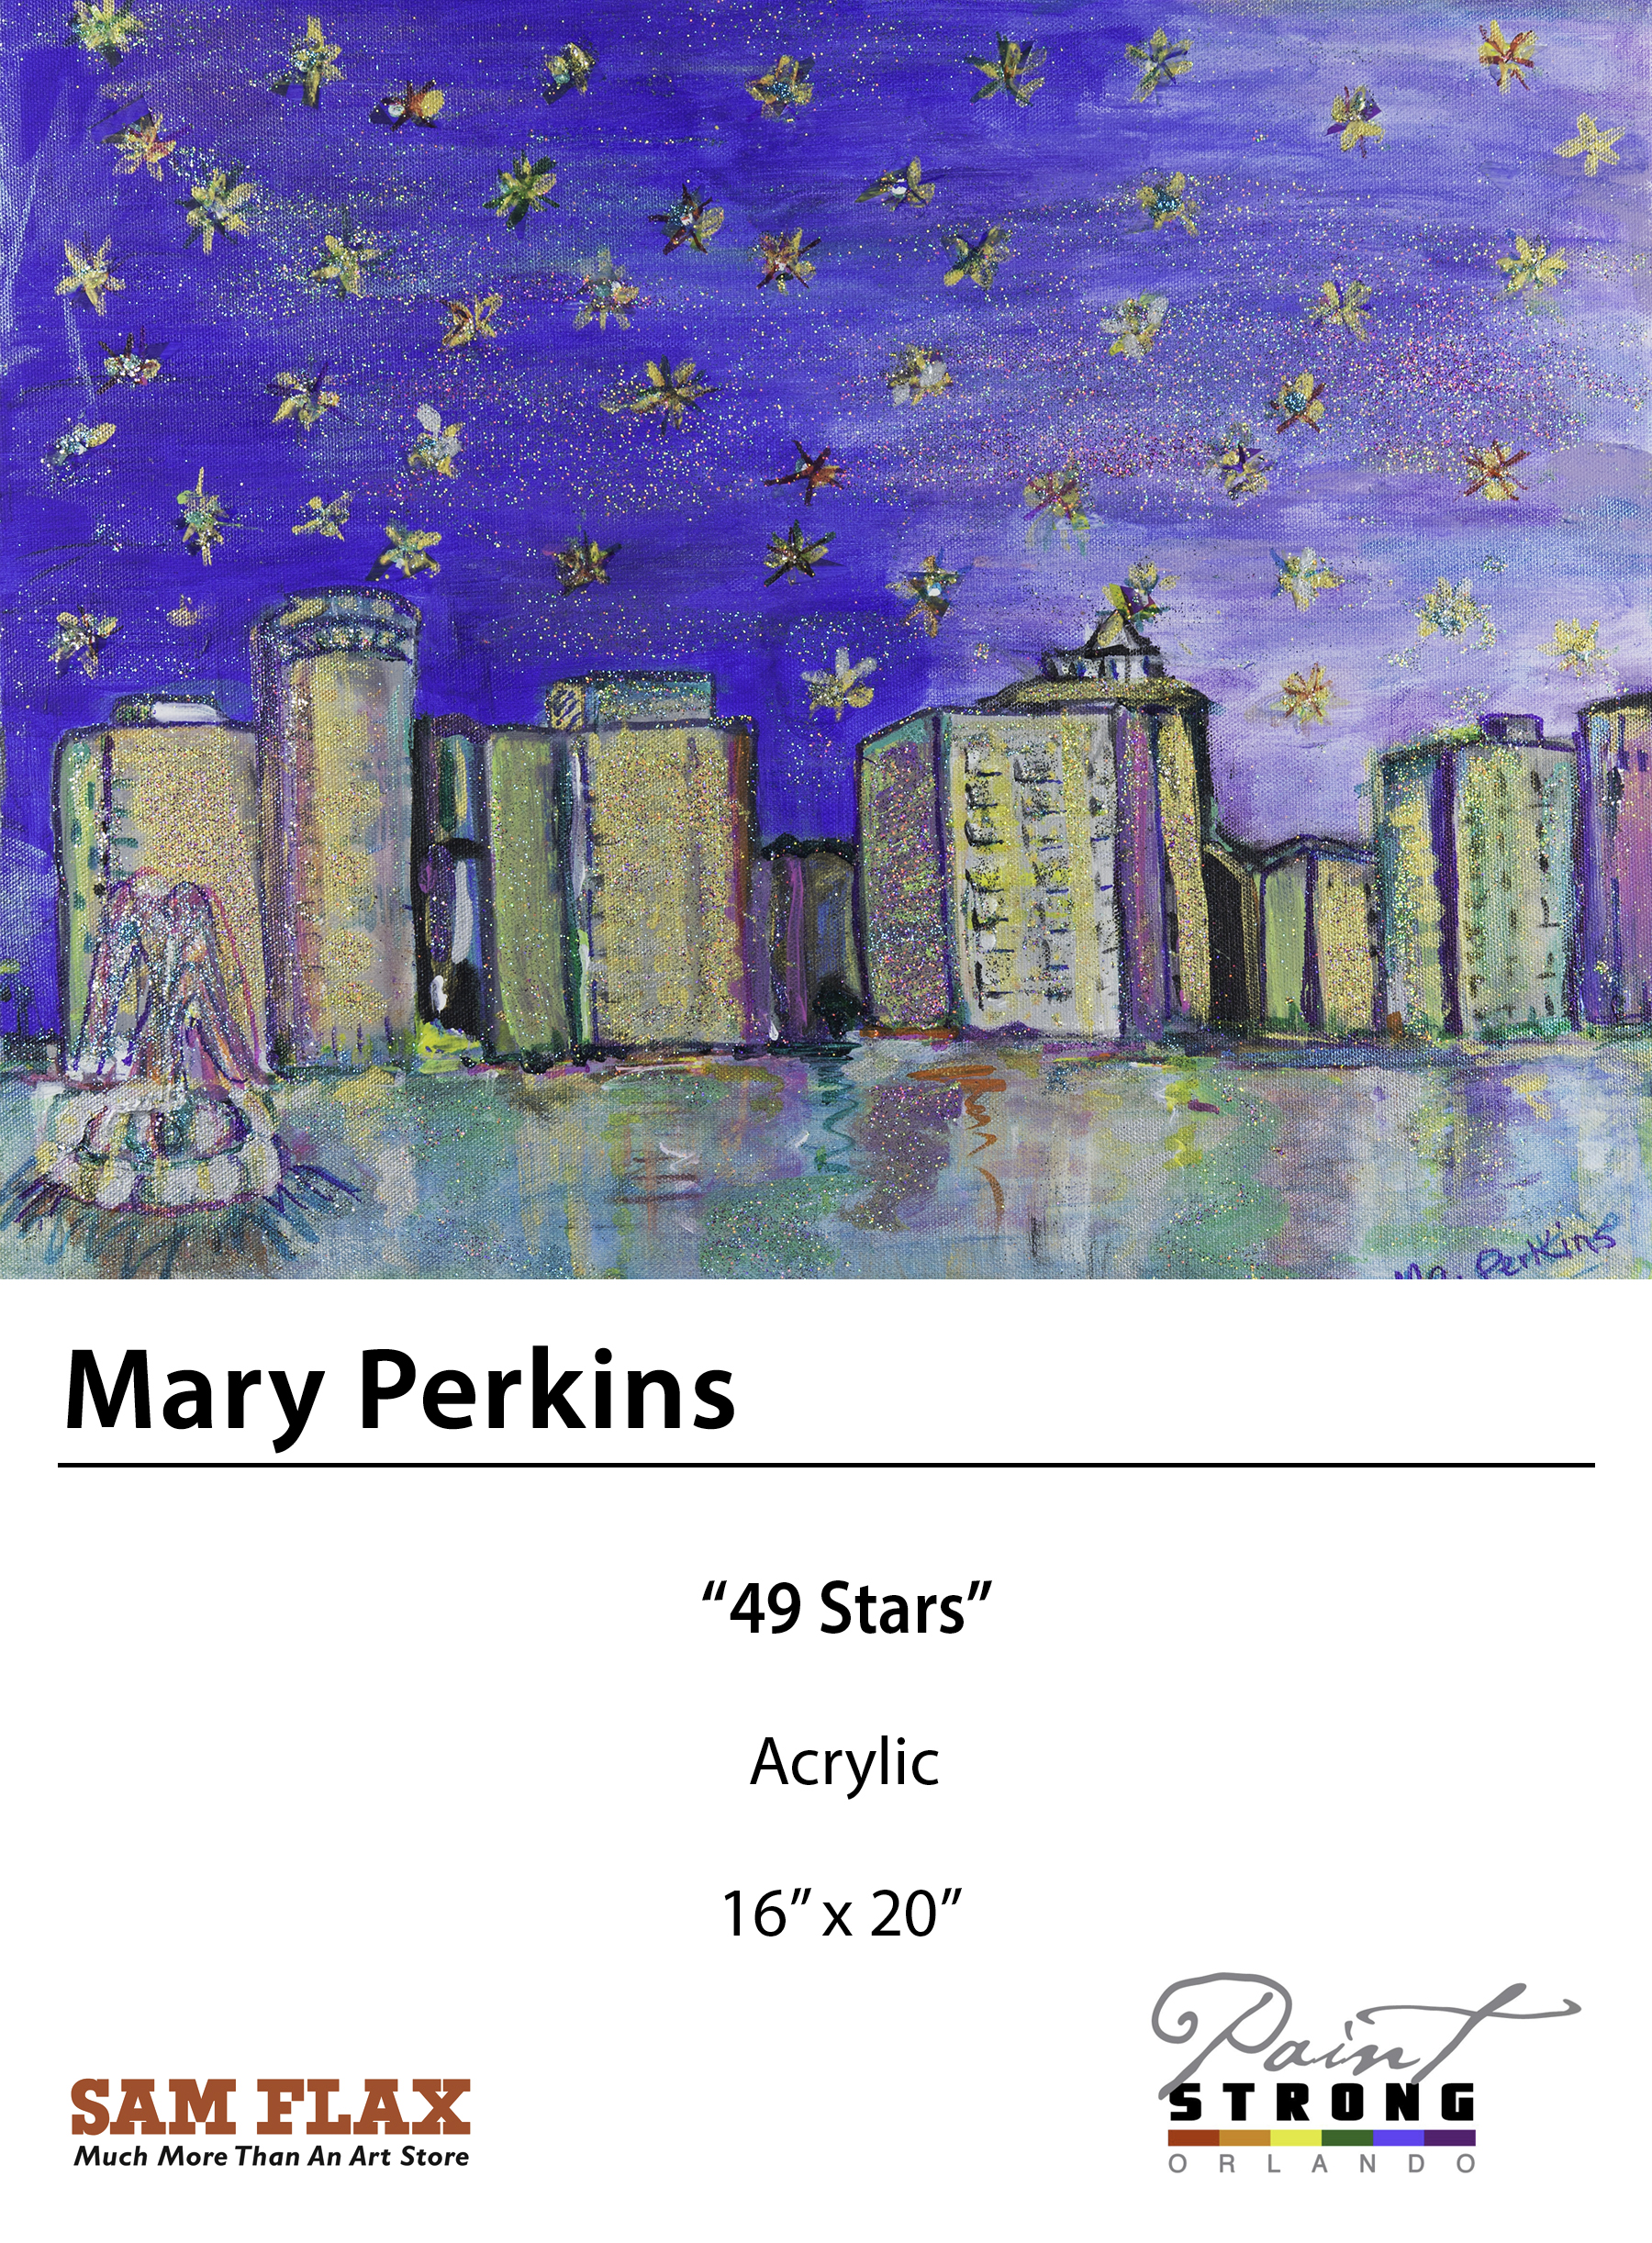 Mary Perkins